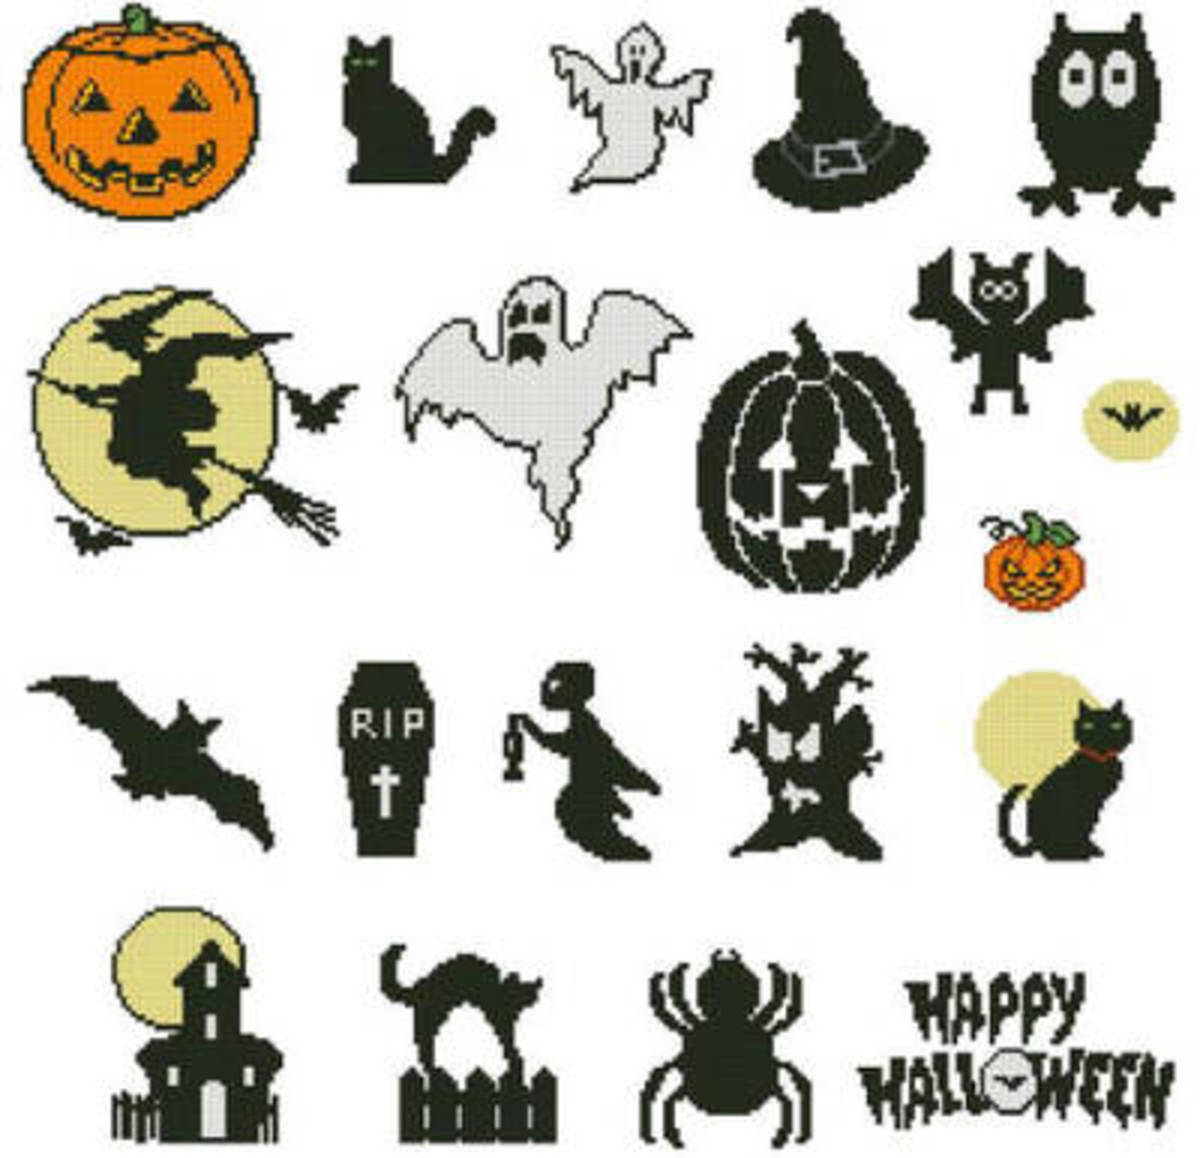 Simple, Basic Halloween Cross Stitch Projects